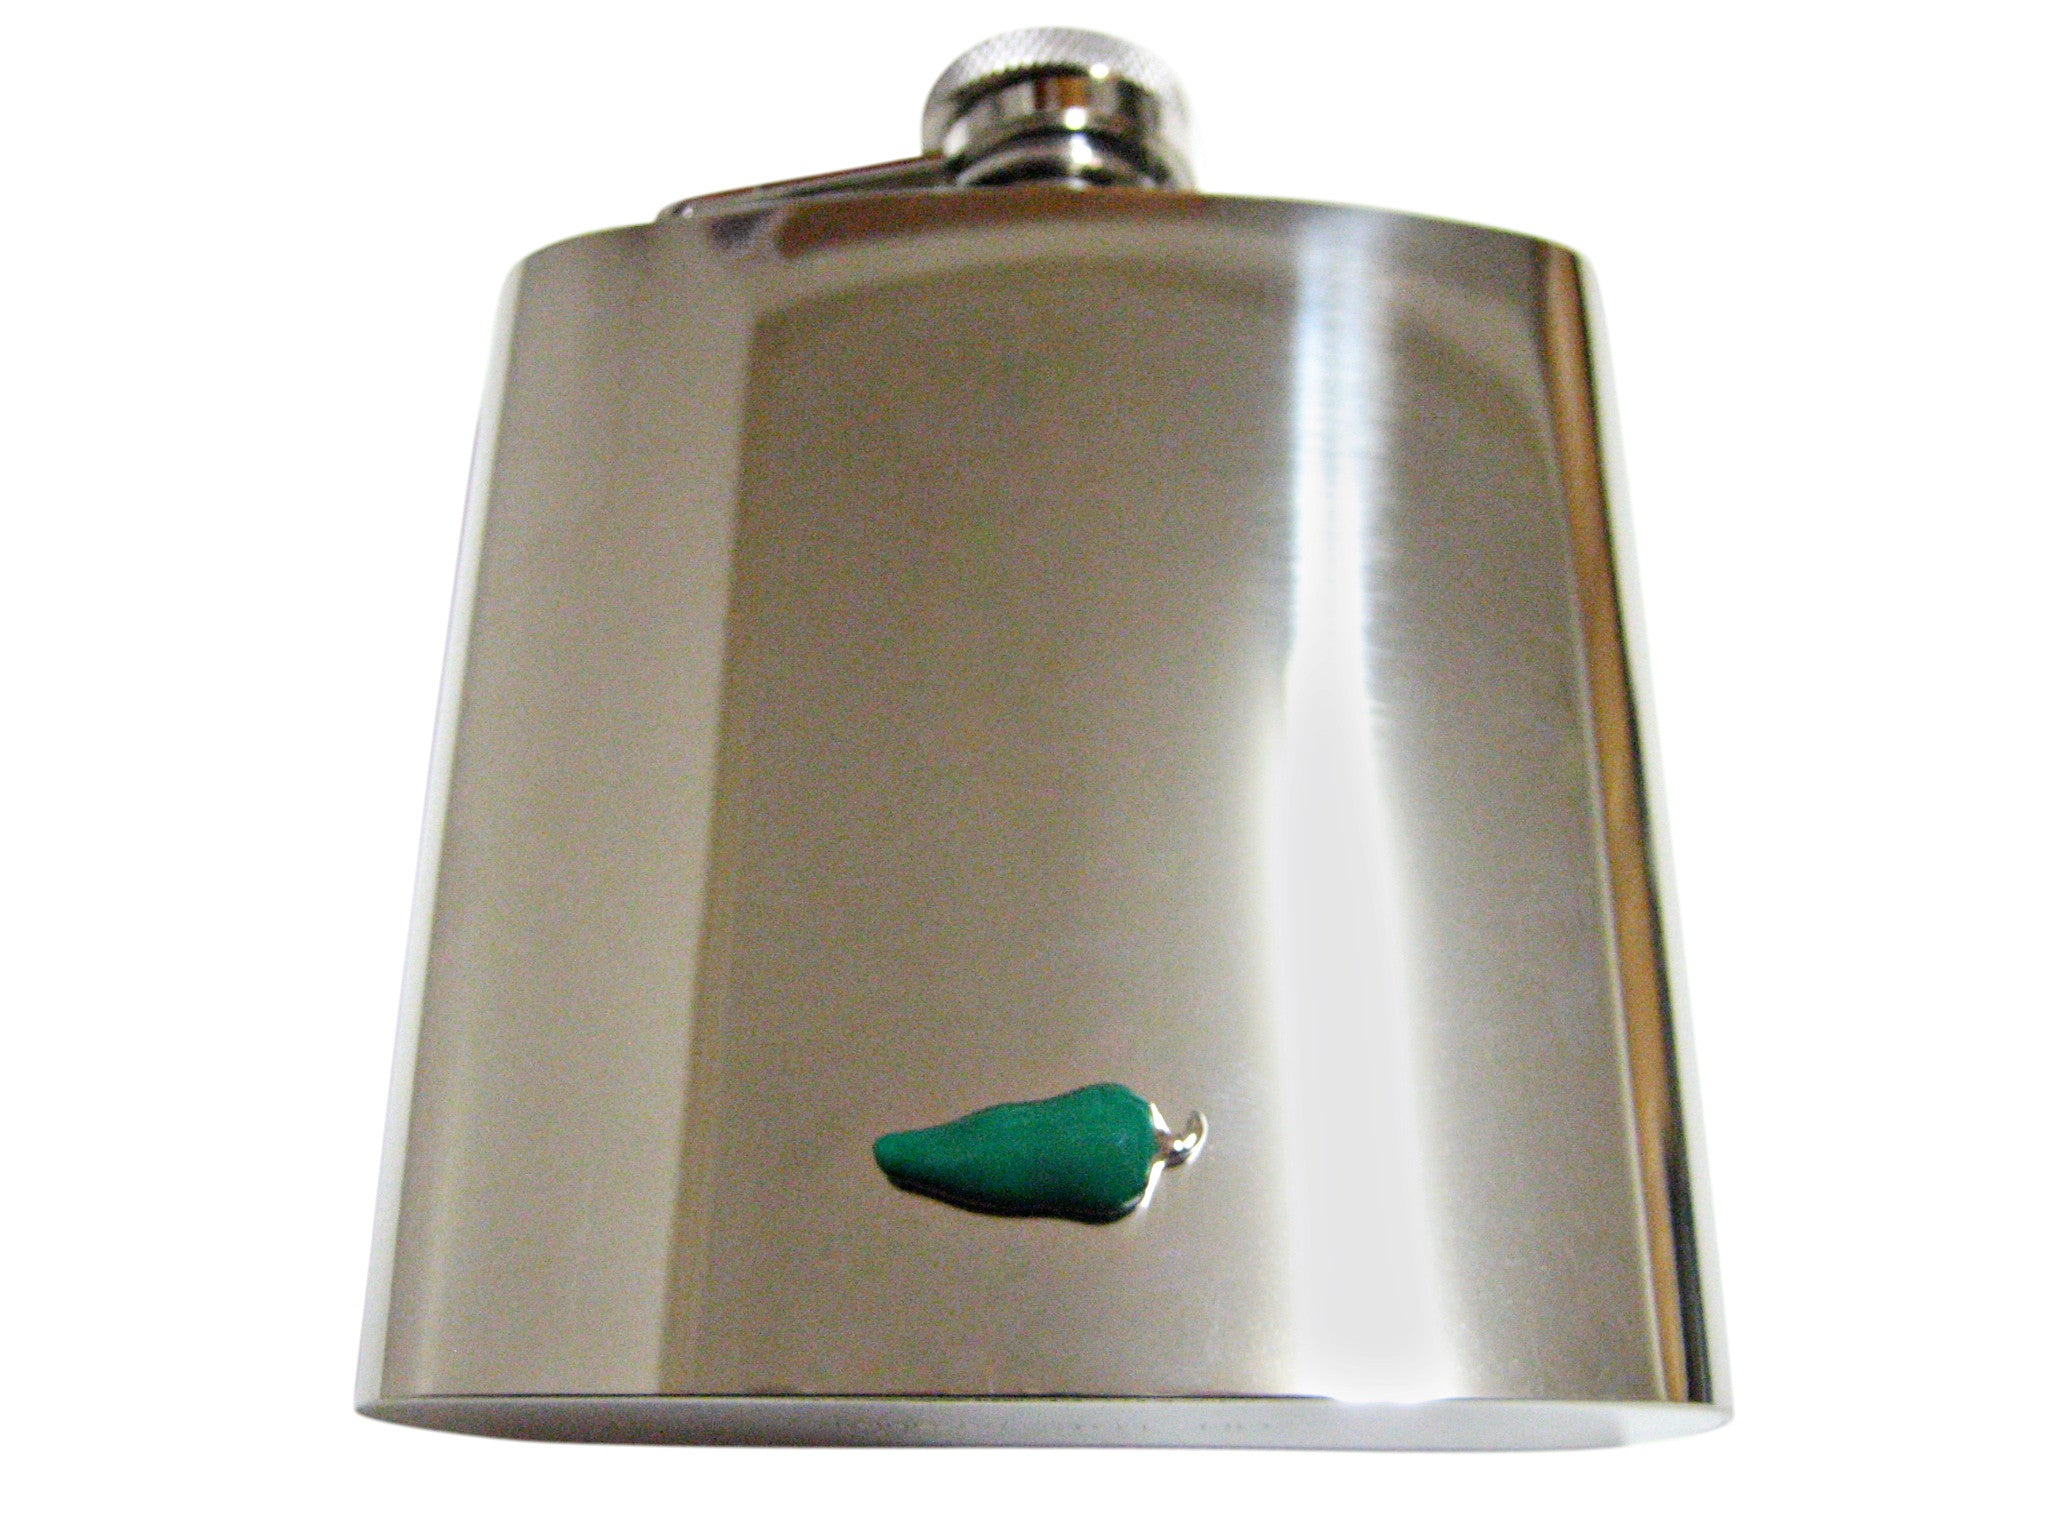 Green Chili Pepper 6 Oz. Stainless Steel Flask